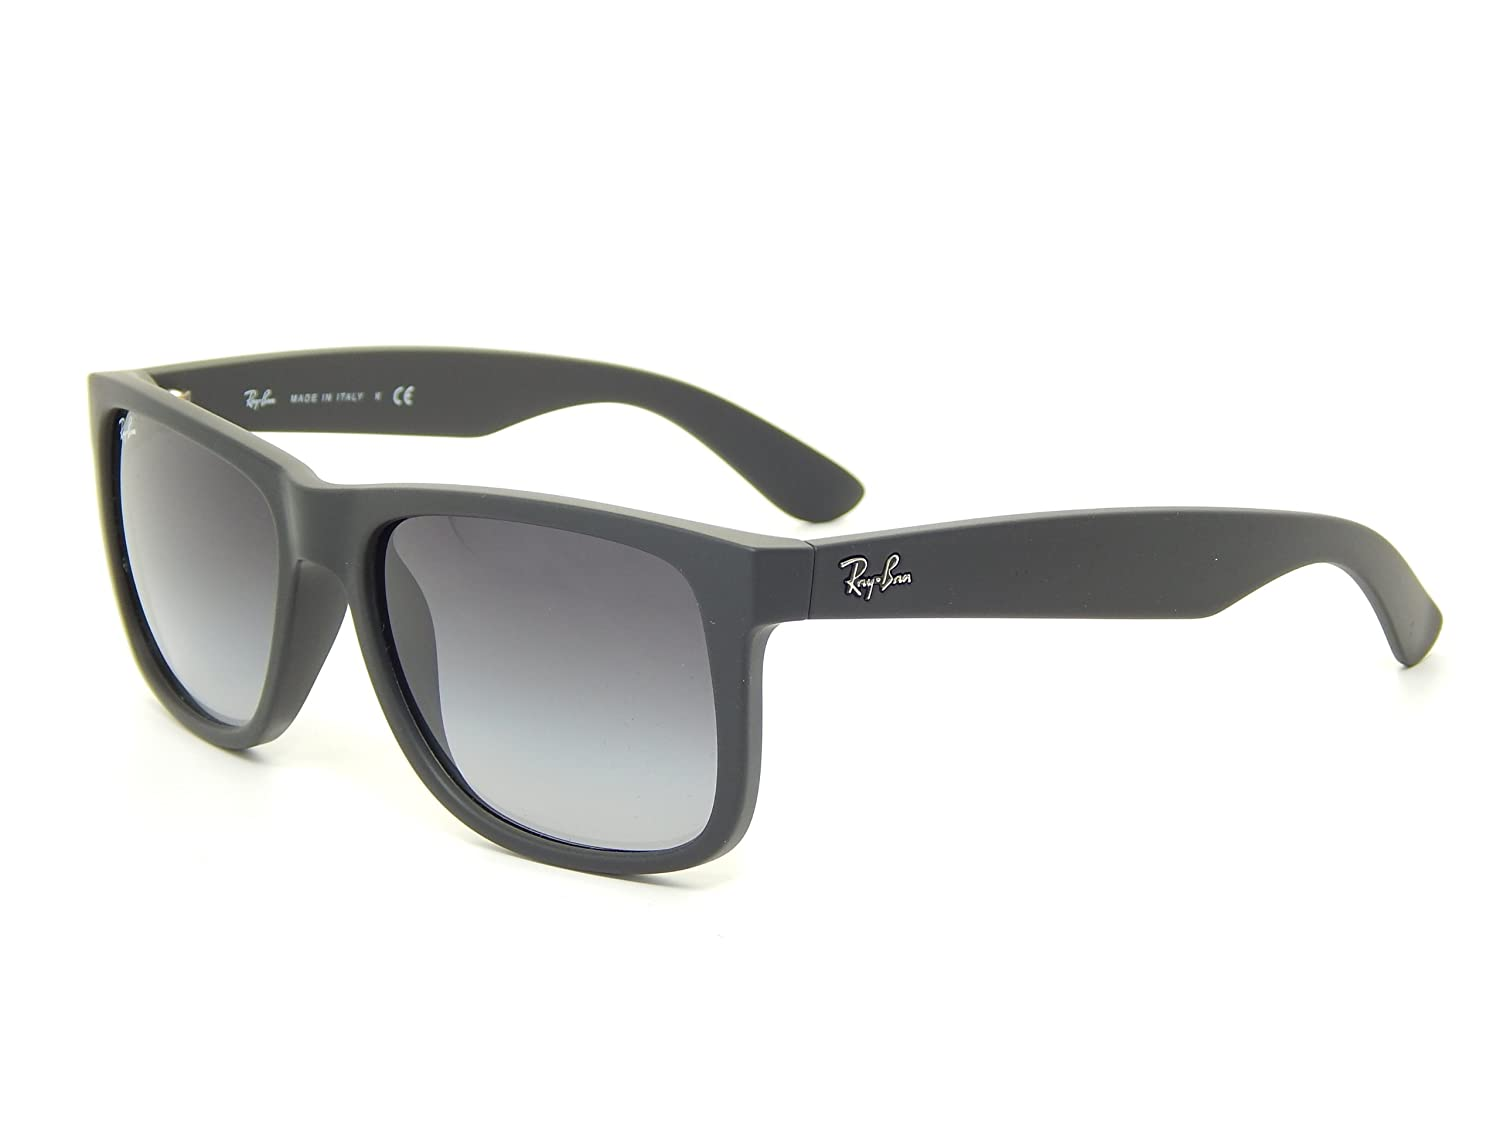 Ray Ban Justin RB4165 601/8G Black/Gray Gradient Lens 51mm Sunglasses